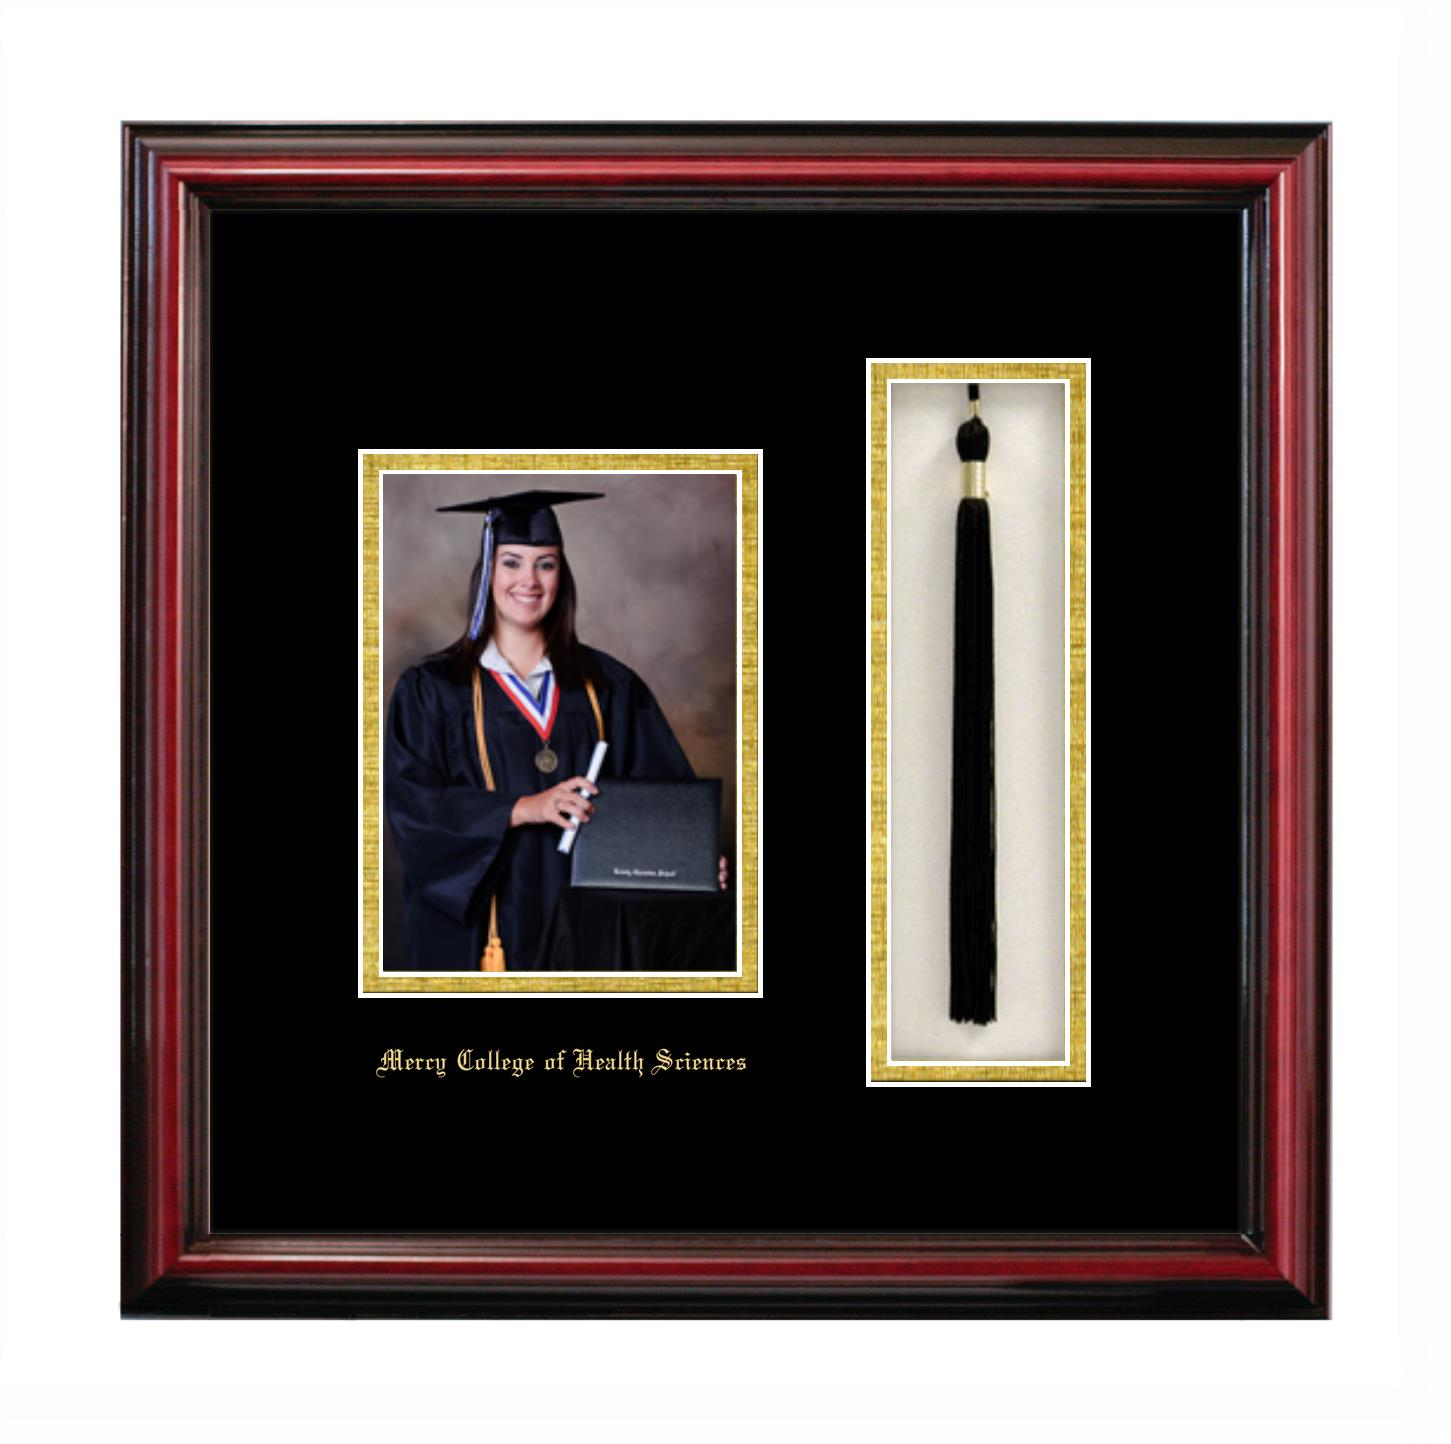 Mercy College Of Health Sciences 5x7 Portrait With Tassel Box Frame In Petite Cherry With Black Gold Mats